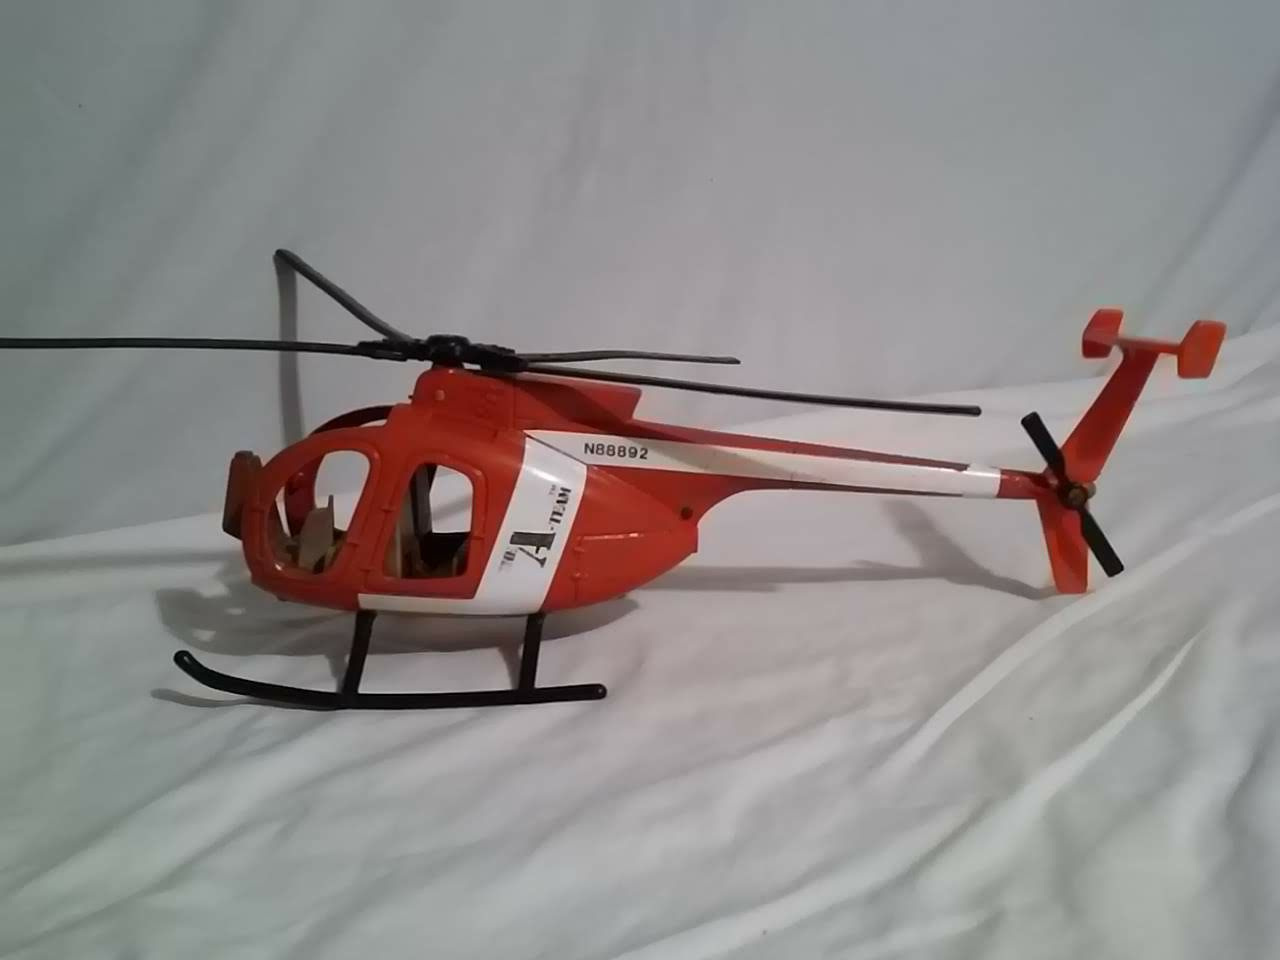 A Team Helicopter